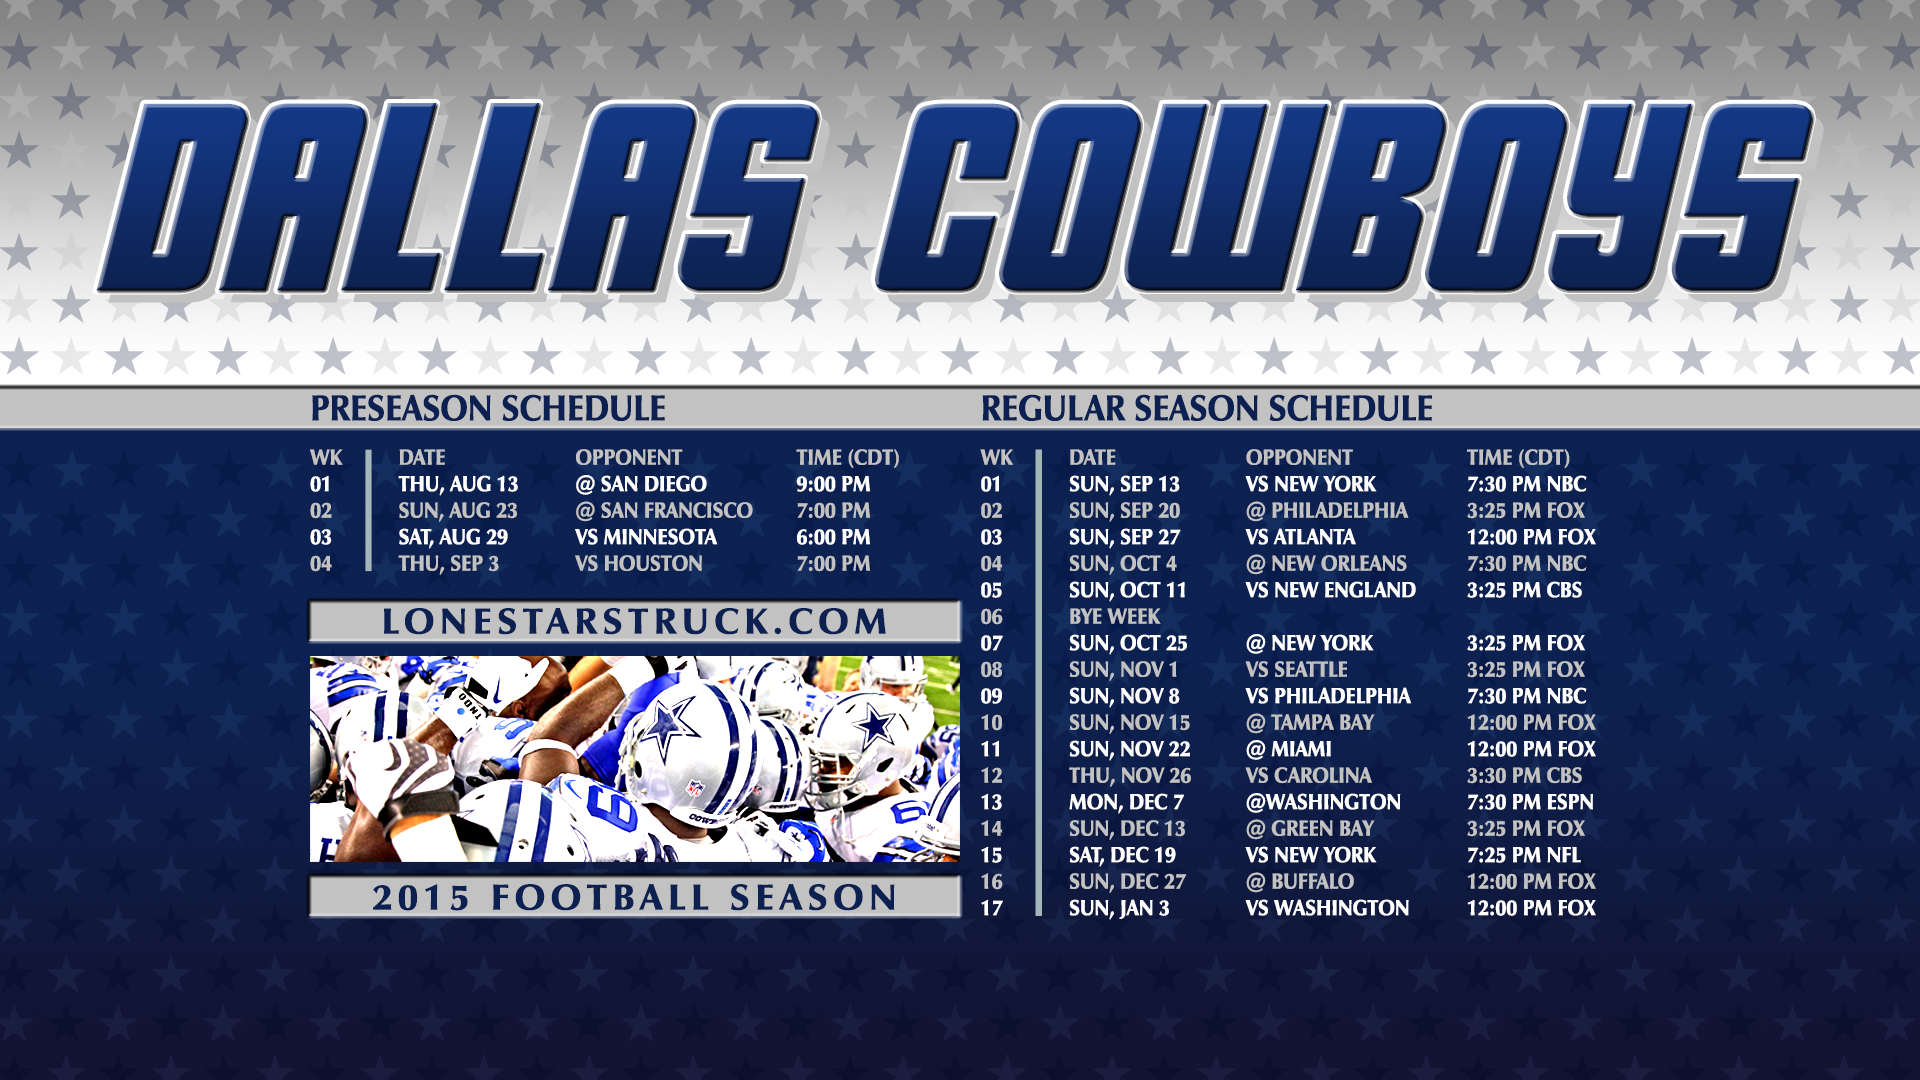 2015 NFL Schedule Dallas Cowboys Wallpaper 1920x1080